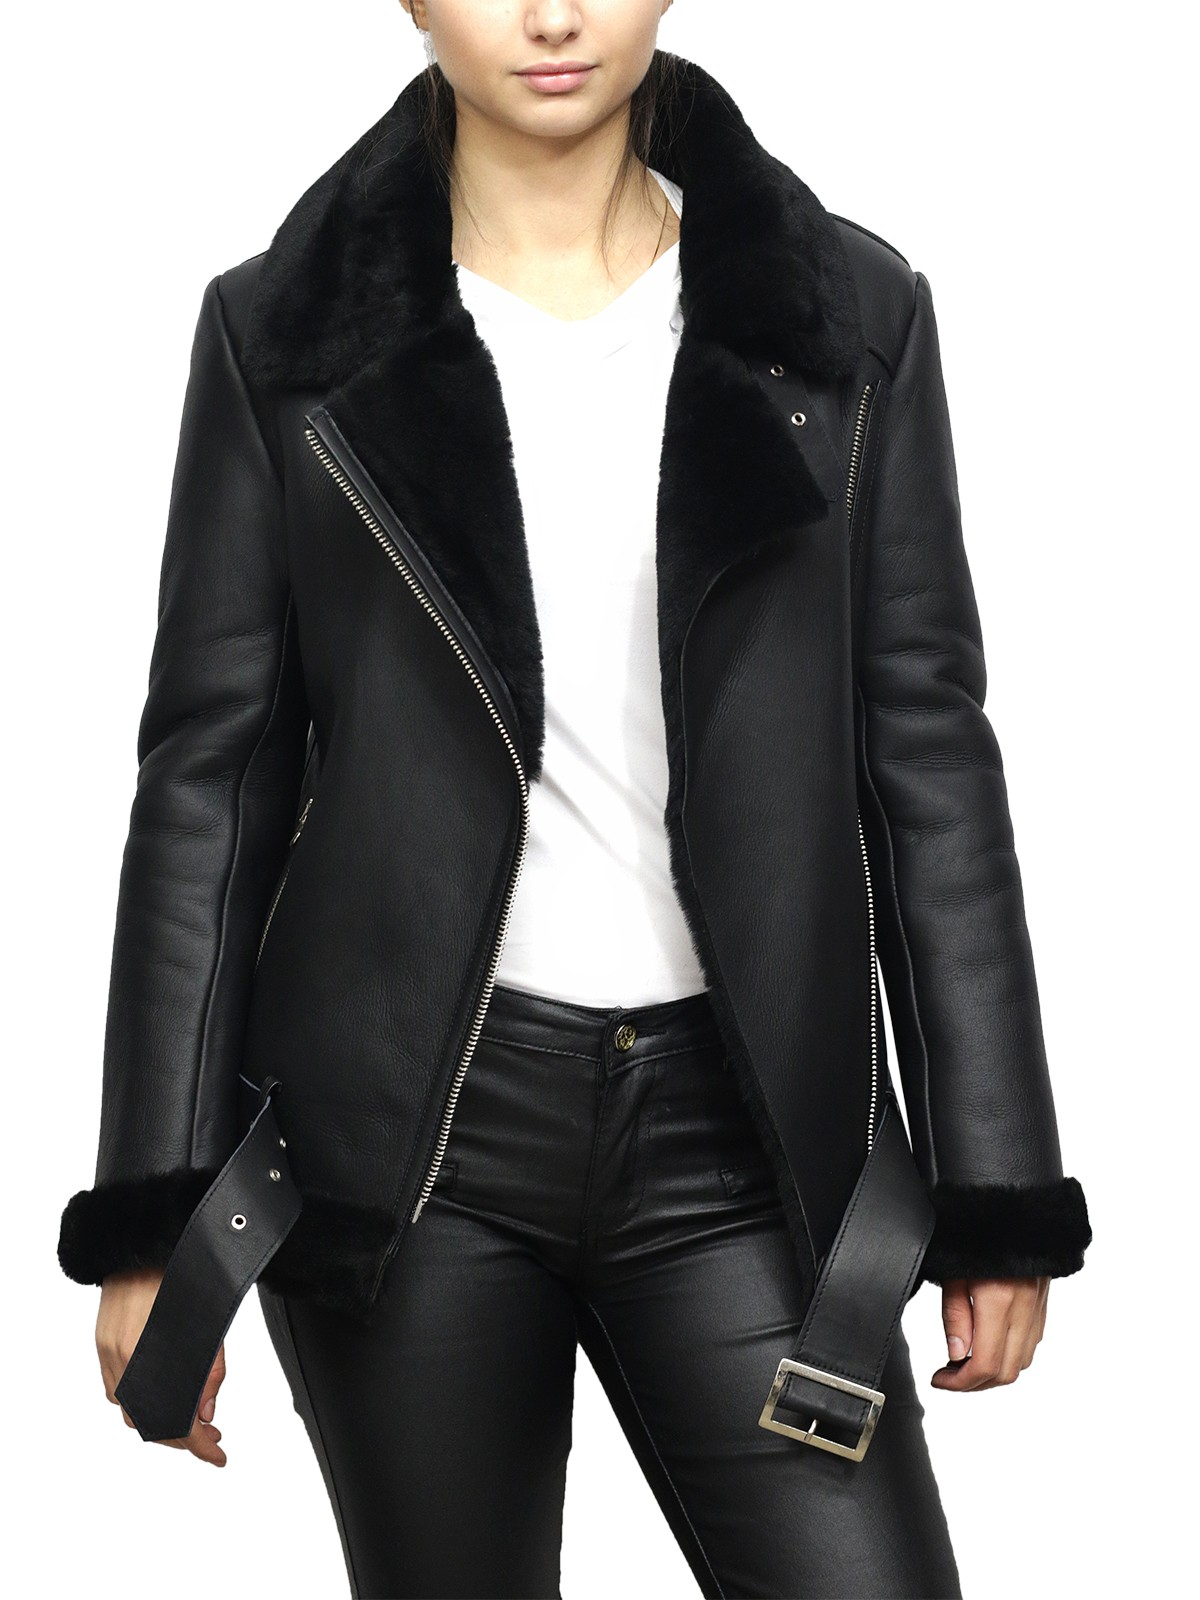 Women leather jackets, leather jackets for women, leather jackets, leather  coats